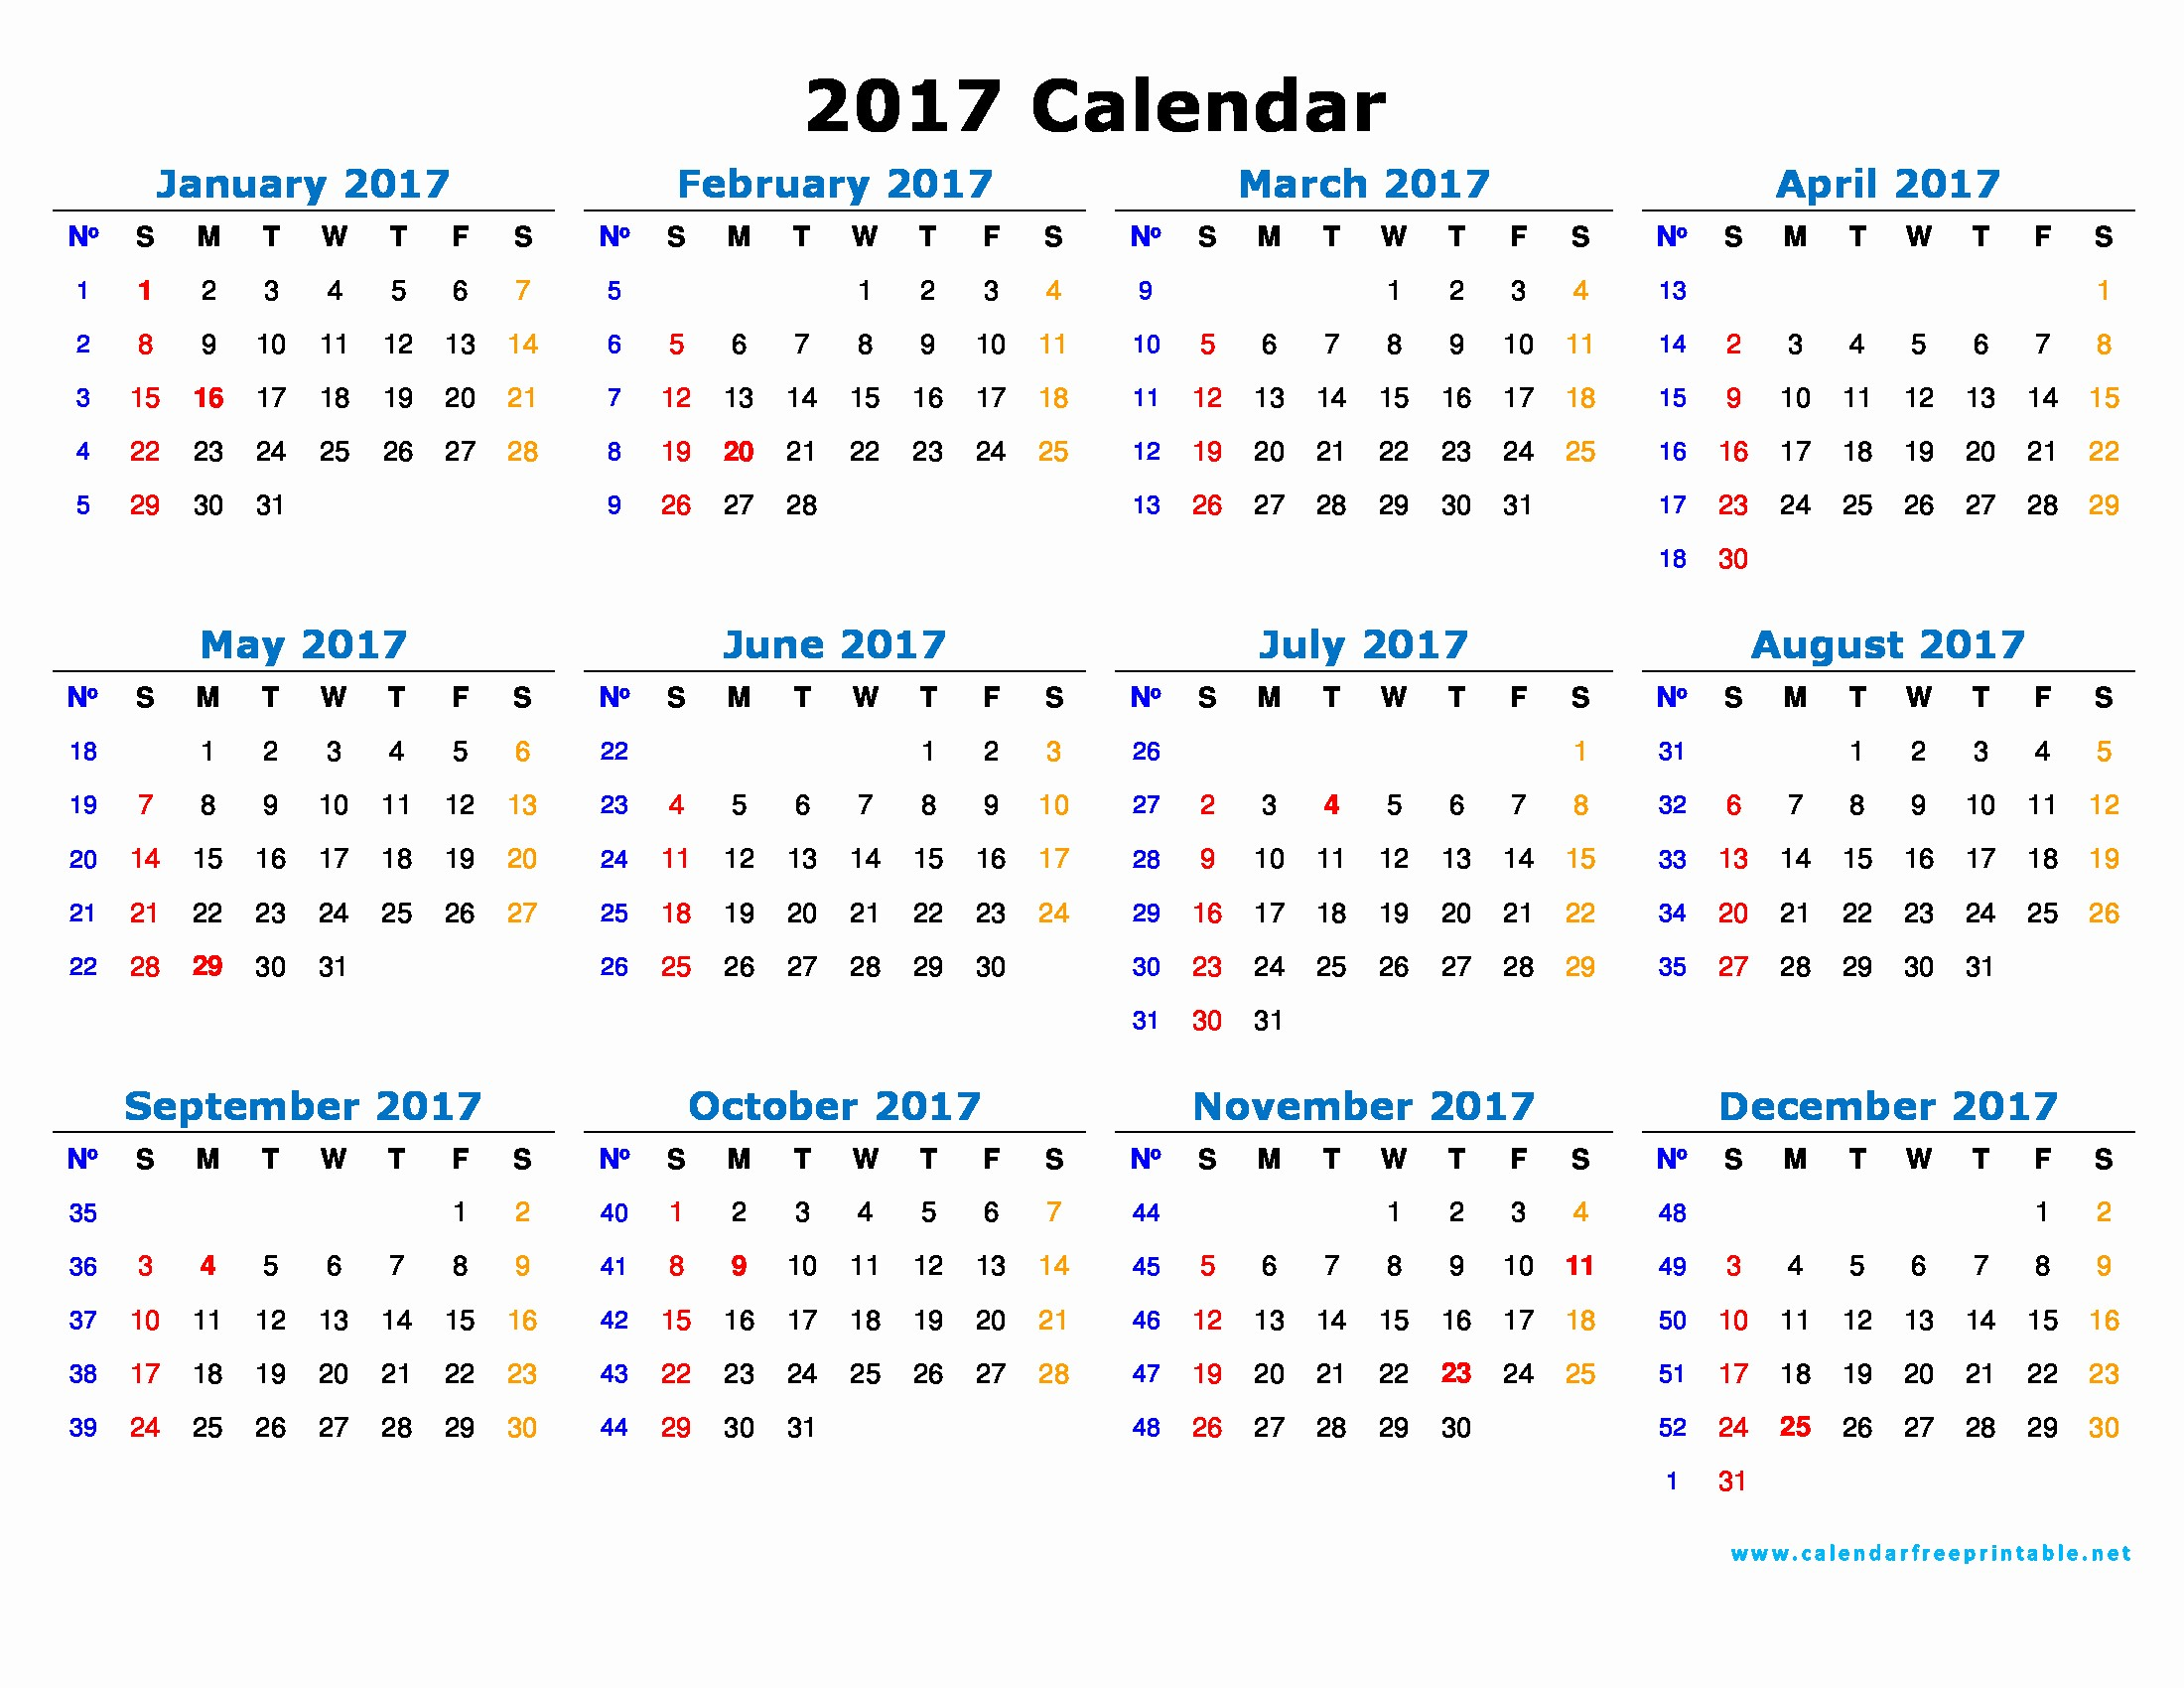 Free 2017 Yearly Calendar Template New 2017 Calendar Printable